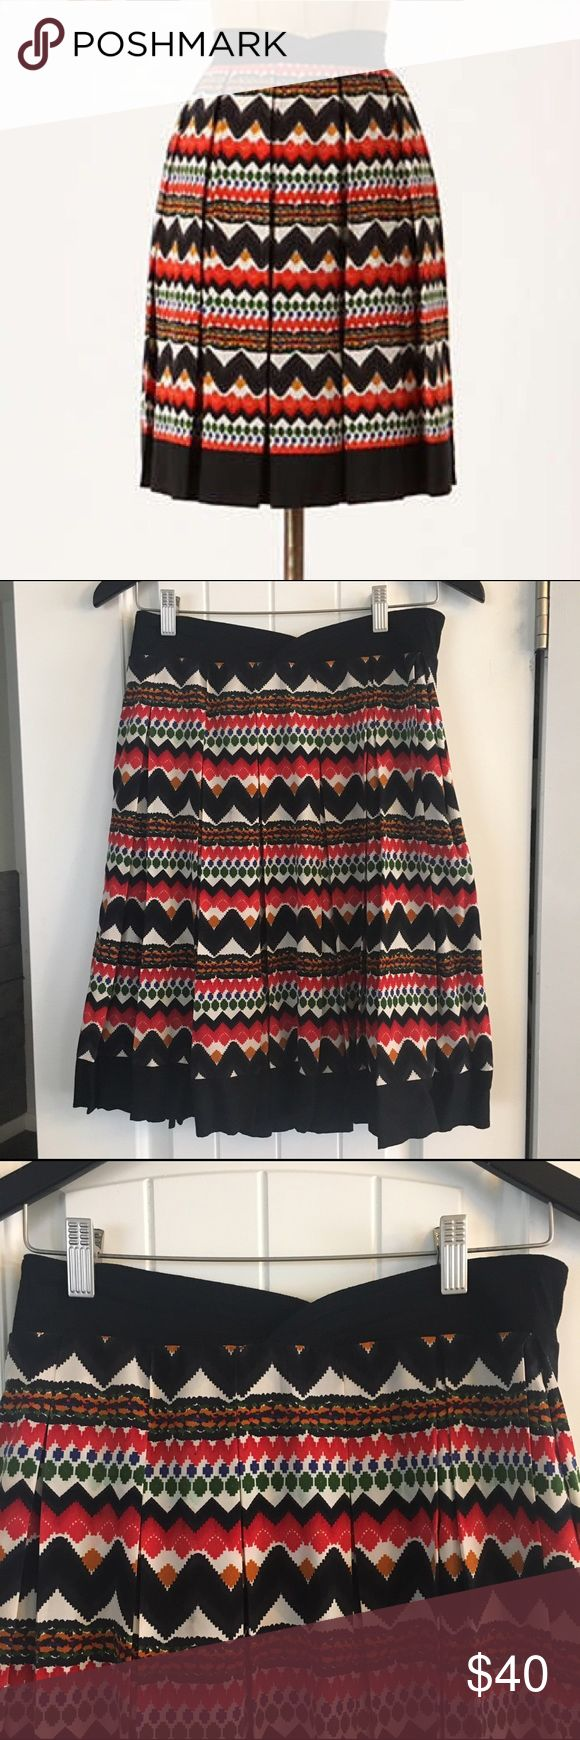 Anthropologie Aztec Print Skirt Beautiful pleated skirt in a fun Aztec print from fei sold at Anthropologie, size 6. Excellent condition, zipper on the side. Anthropologie Skirts